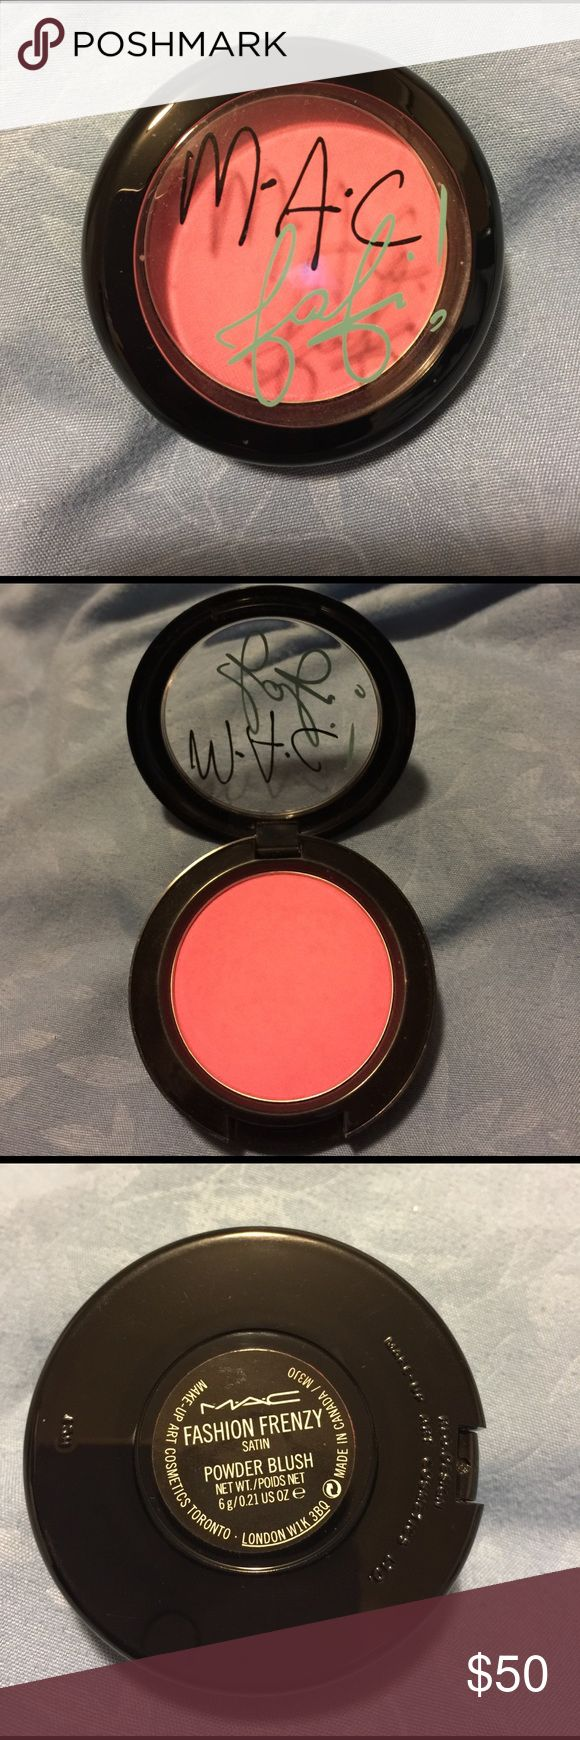 Like new! Rare MAC Fafi fashion frenzy blush Blush